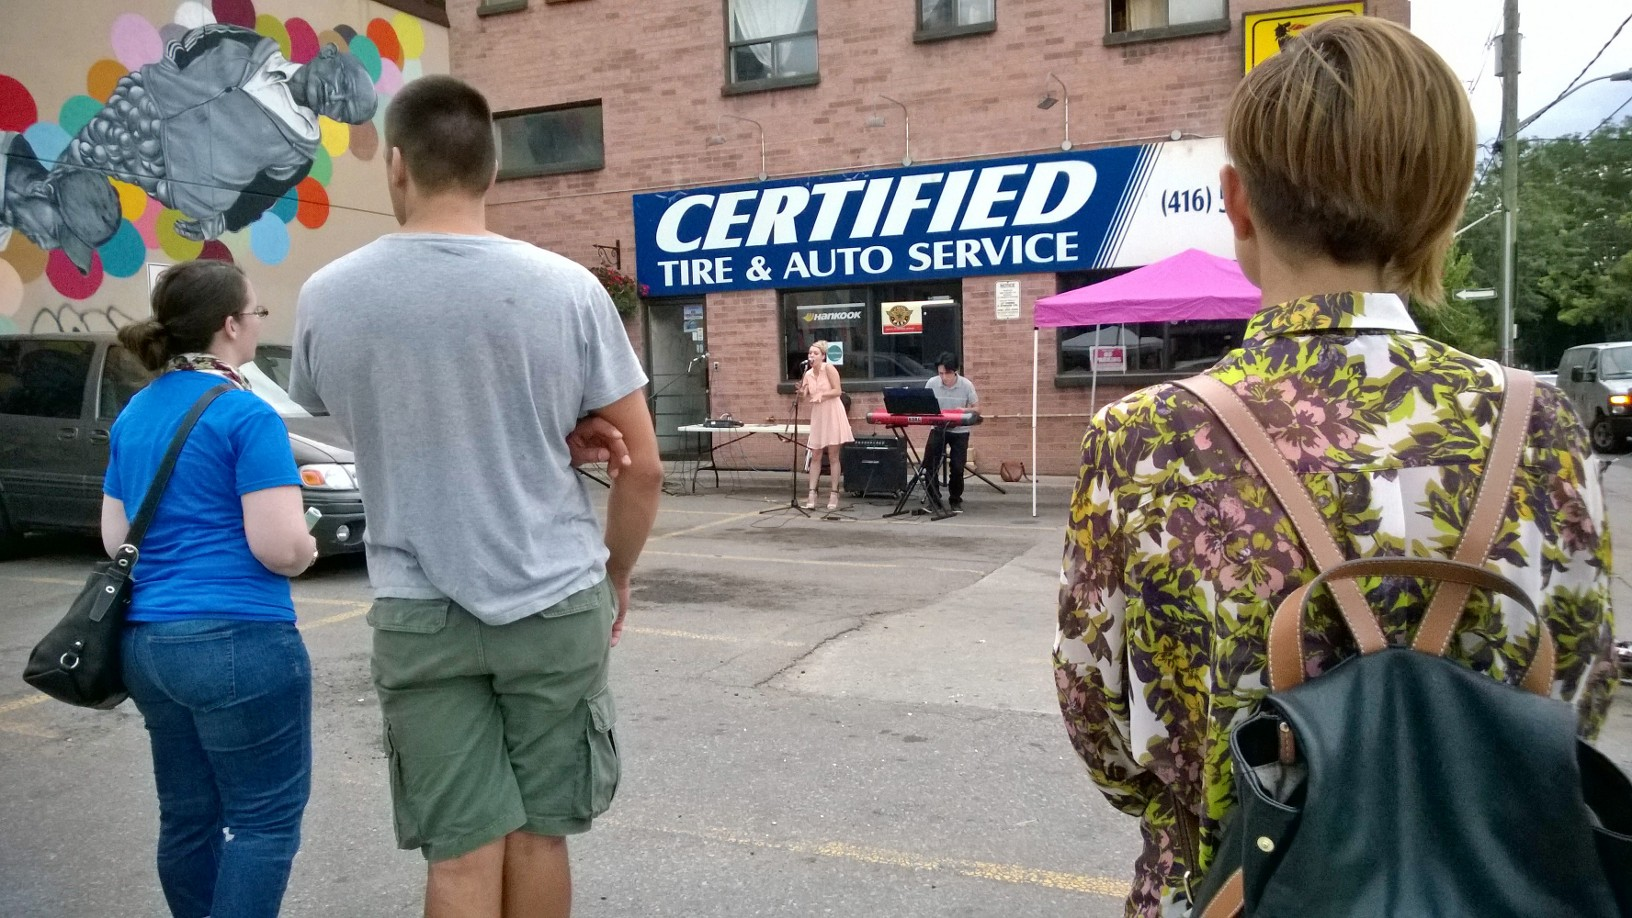 parkdale online dating High park dater sara says she's been on both sides of some undesirable online dating  partner is still on any dating apps parkdale's safiya admits.